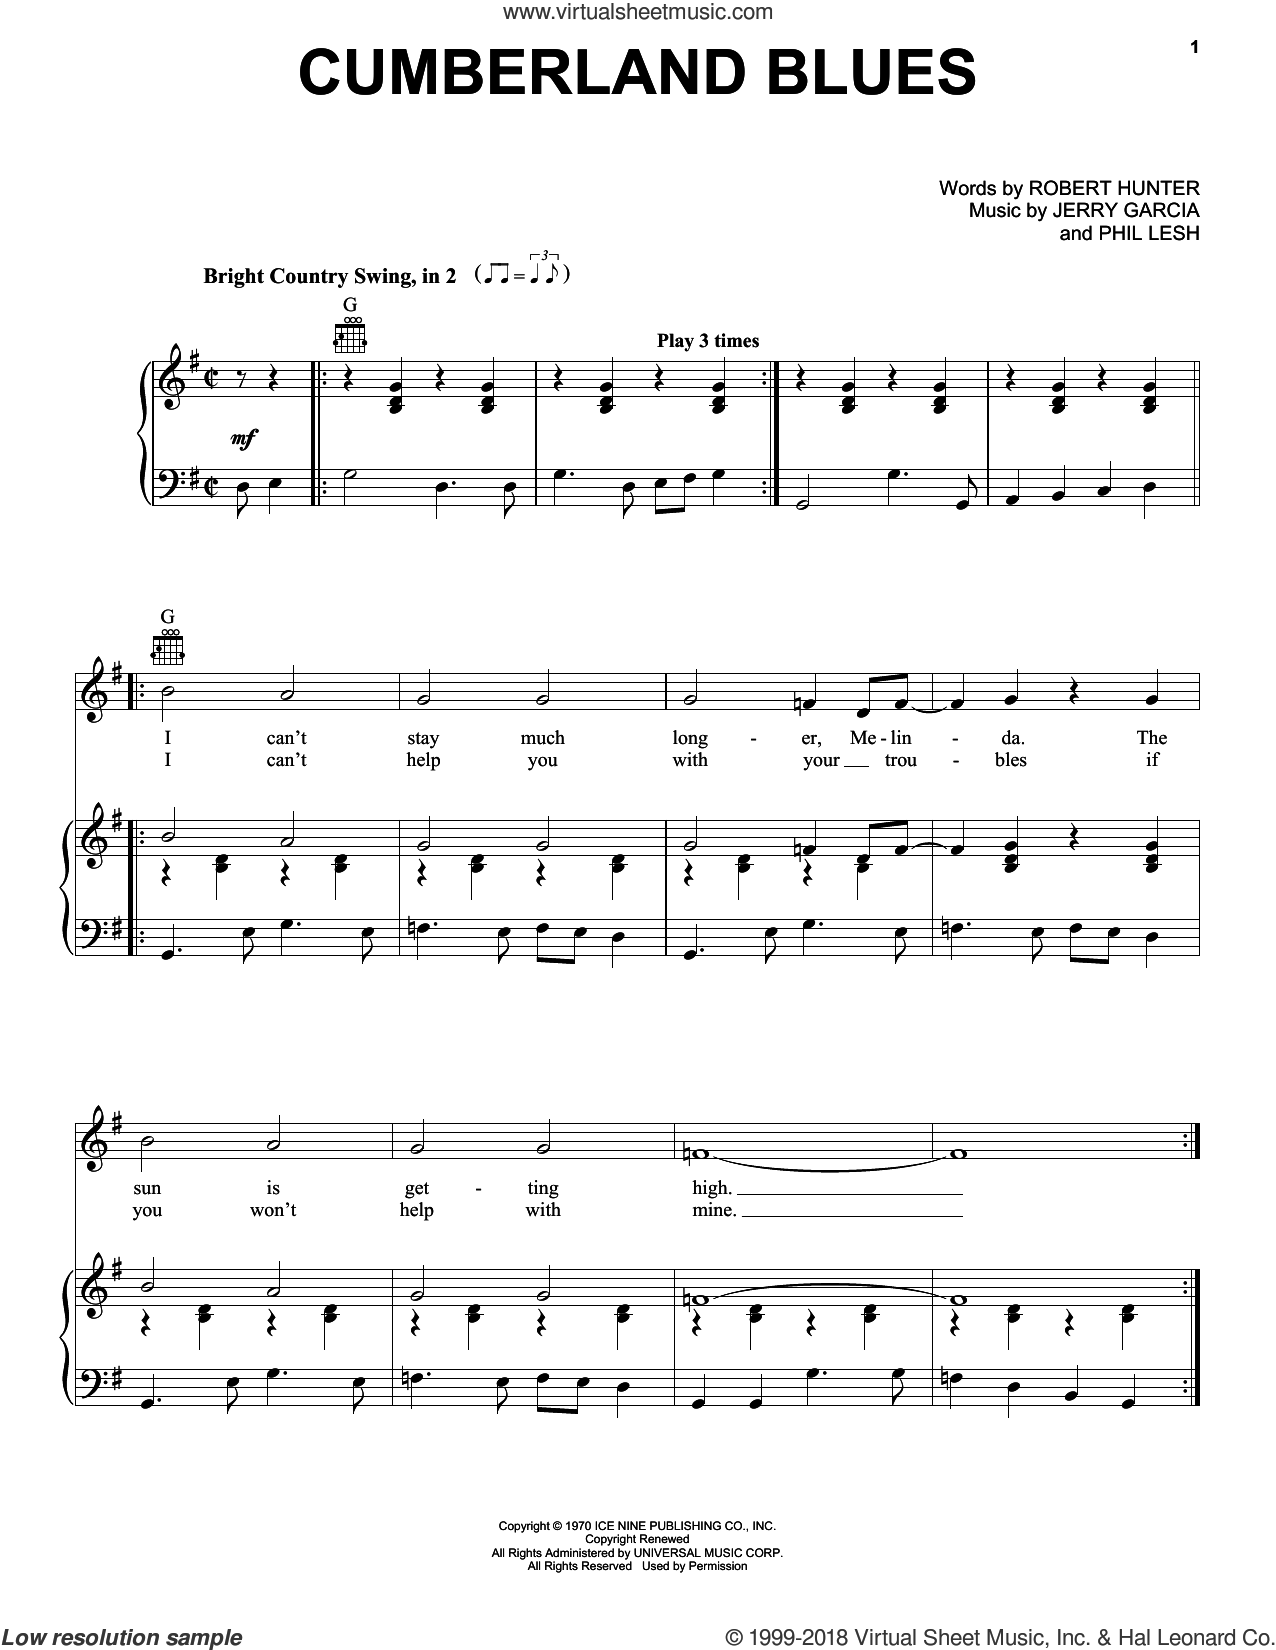 Cumberland Blues sheet music for voice, piano or guitar by Grateful Dead, Jerry Garcia, Phil Lesh and Robert Hunter, intermediate skill level